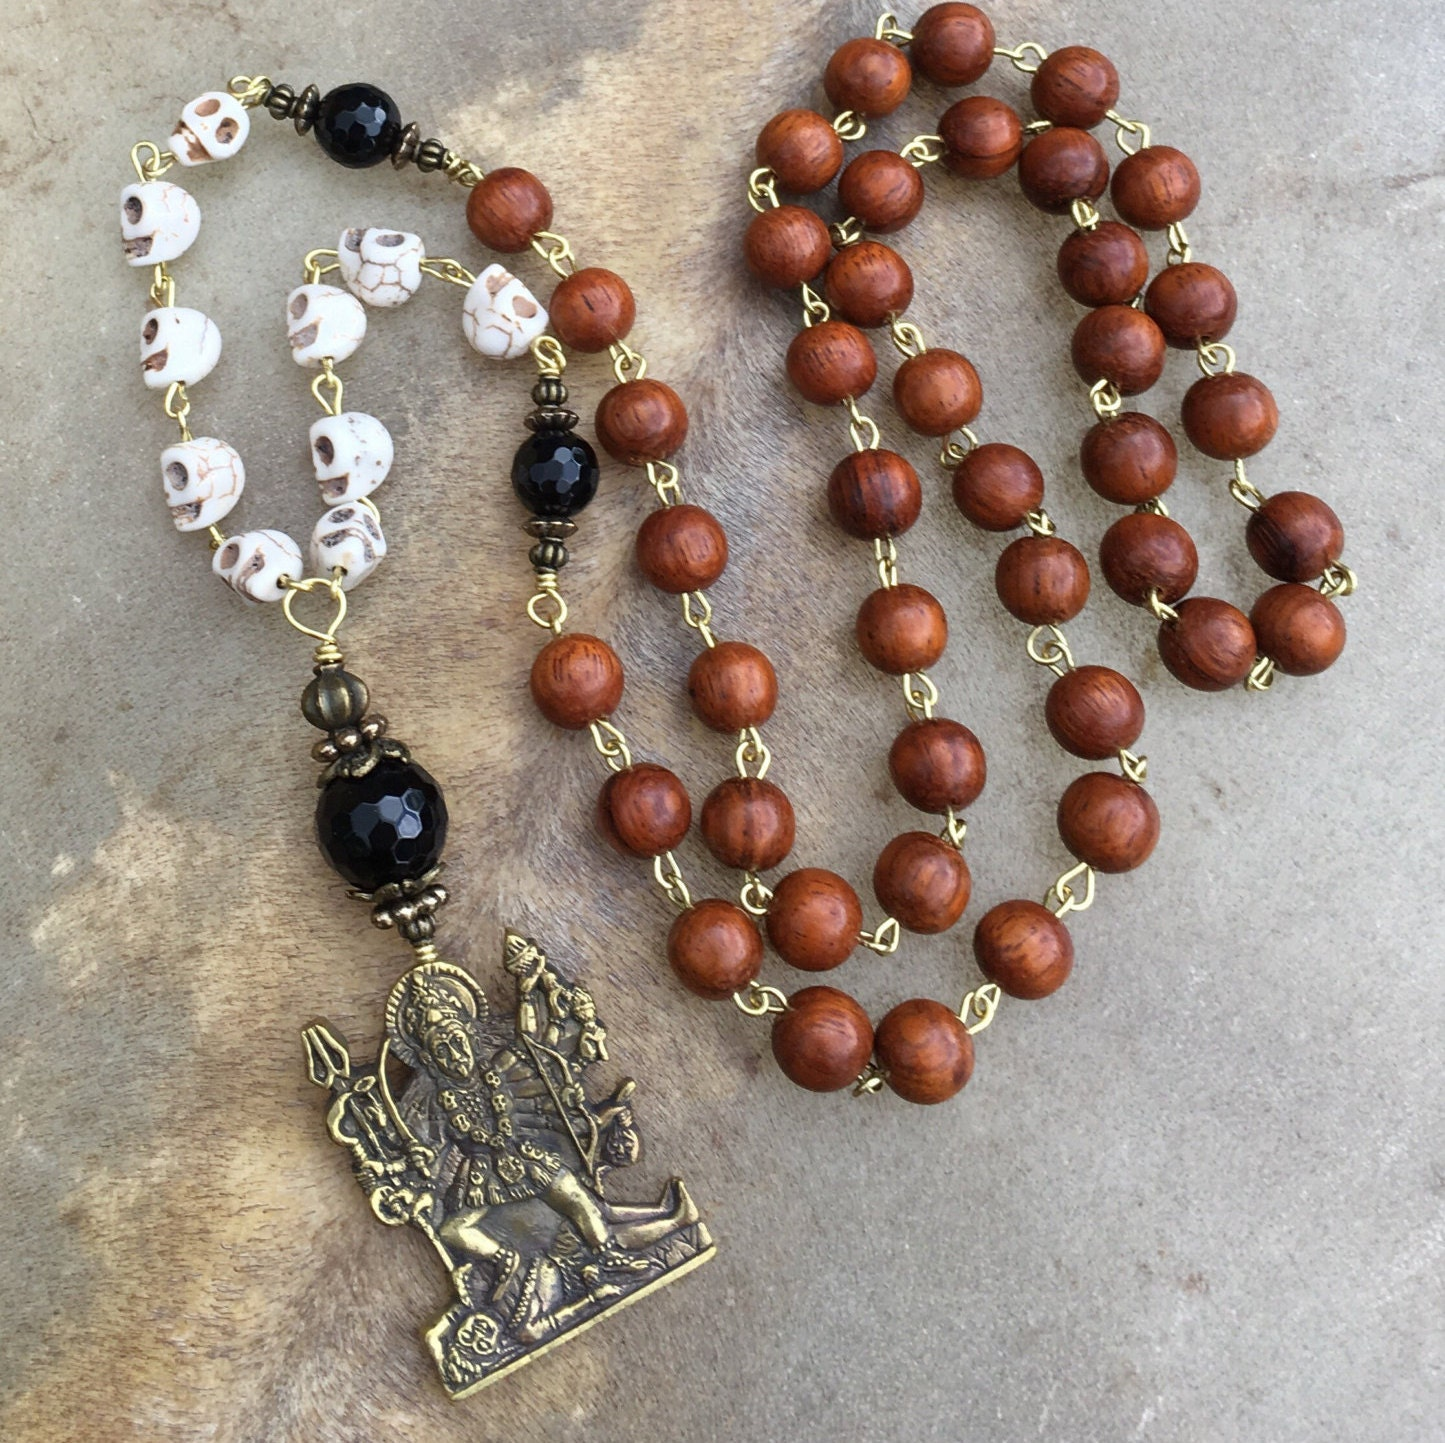 prayer products antique necklace gold clay tibetan inlay vintage ethnic sold religious hematite img old copper matte box ghau